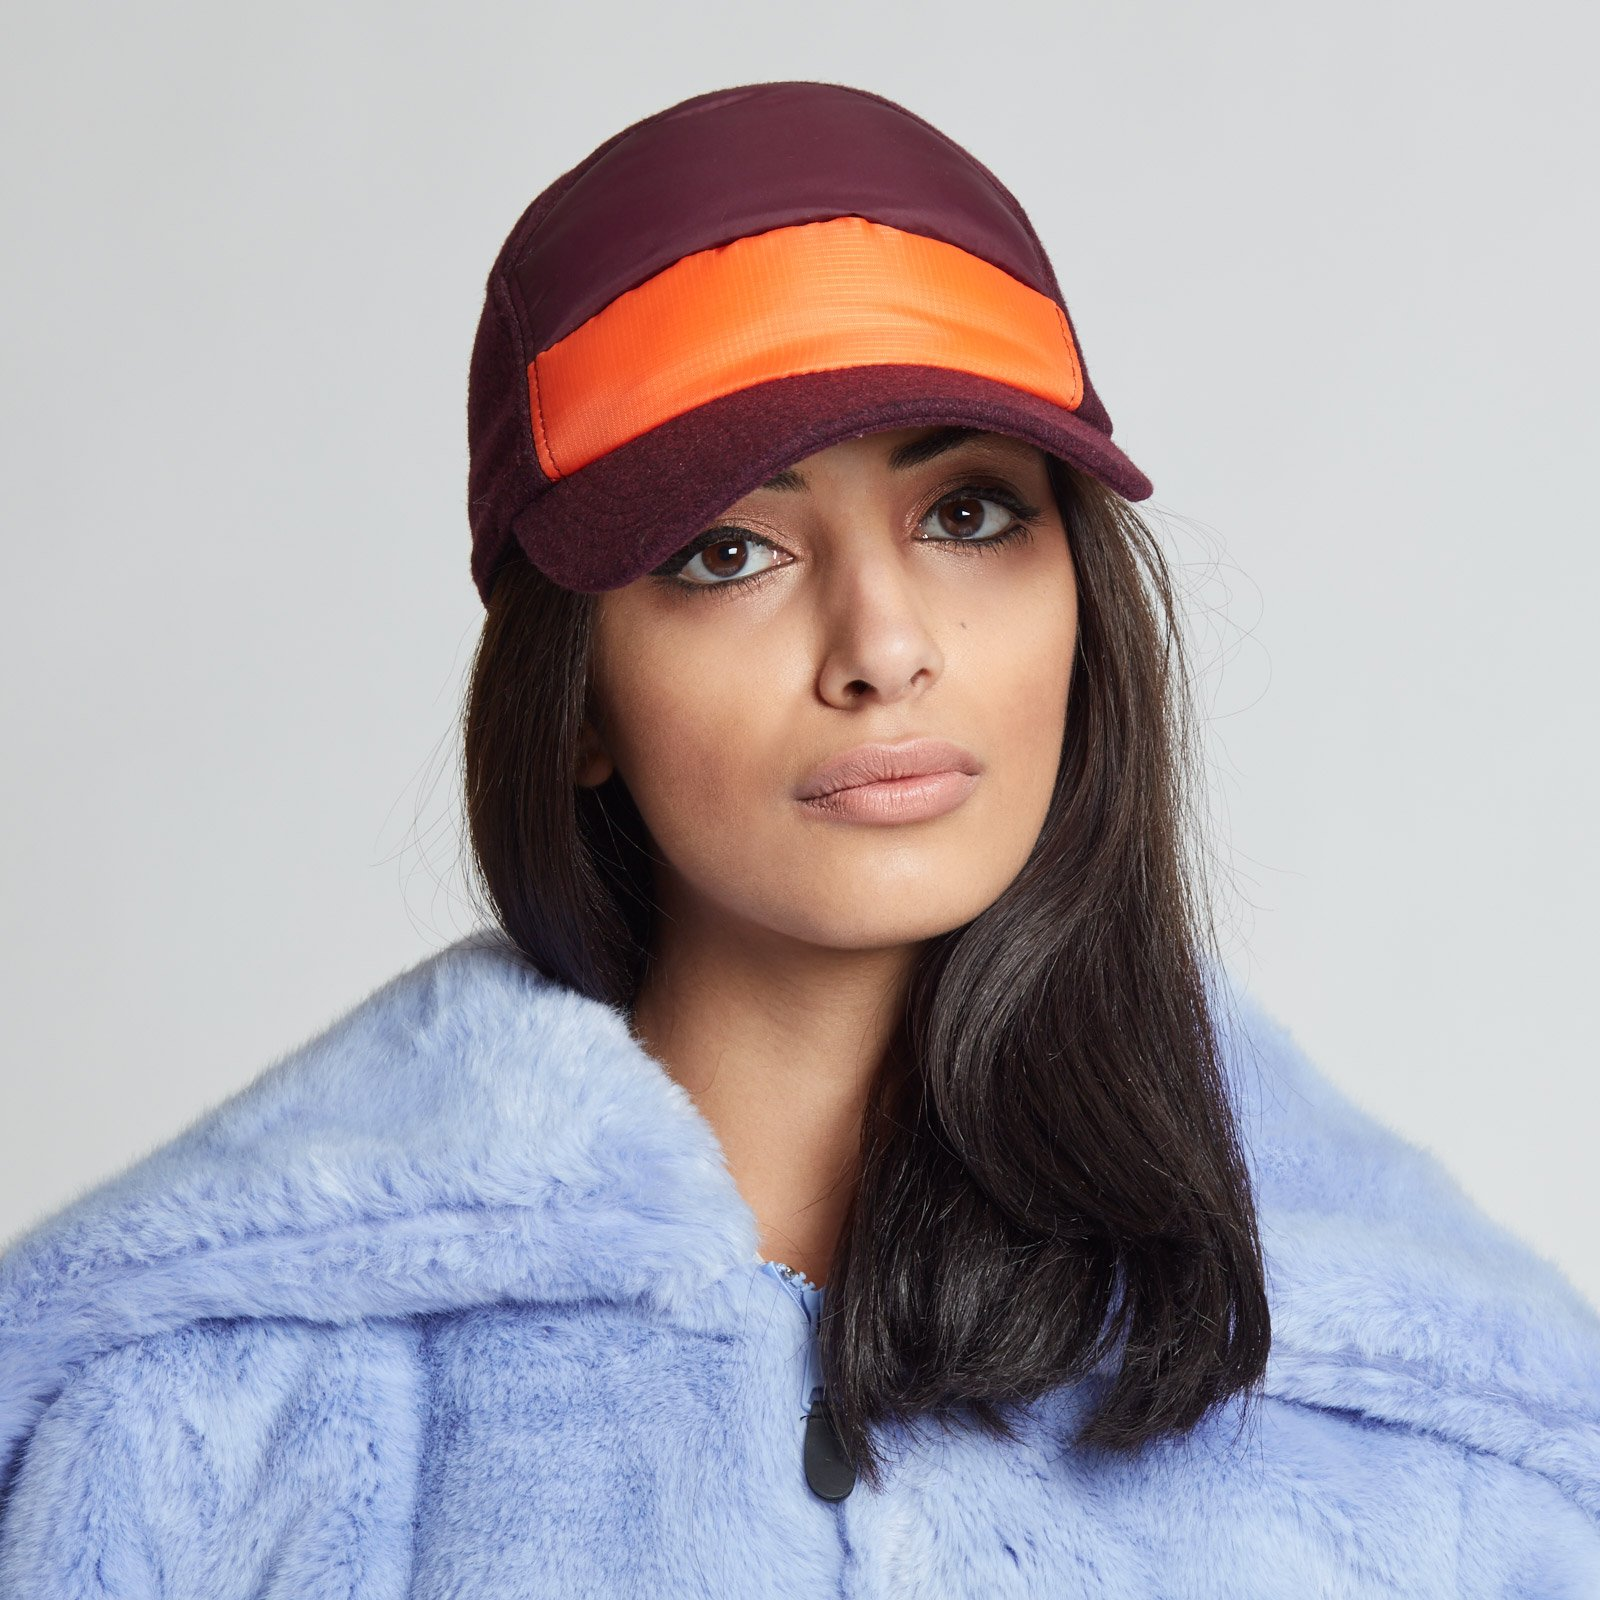 low priced 91f14 69e4a Fenty PUMA by Rihanna Puffer Cap